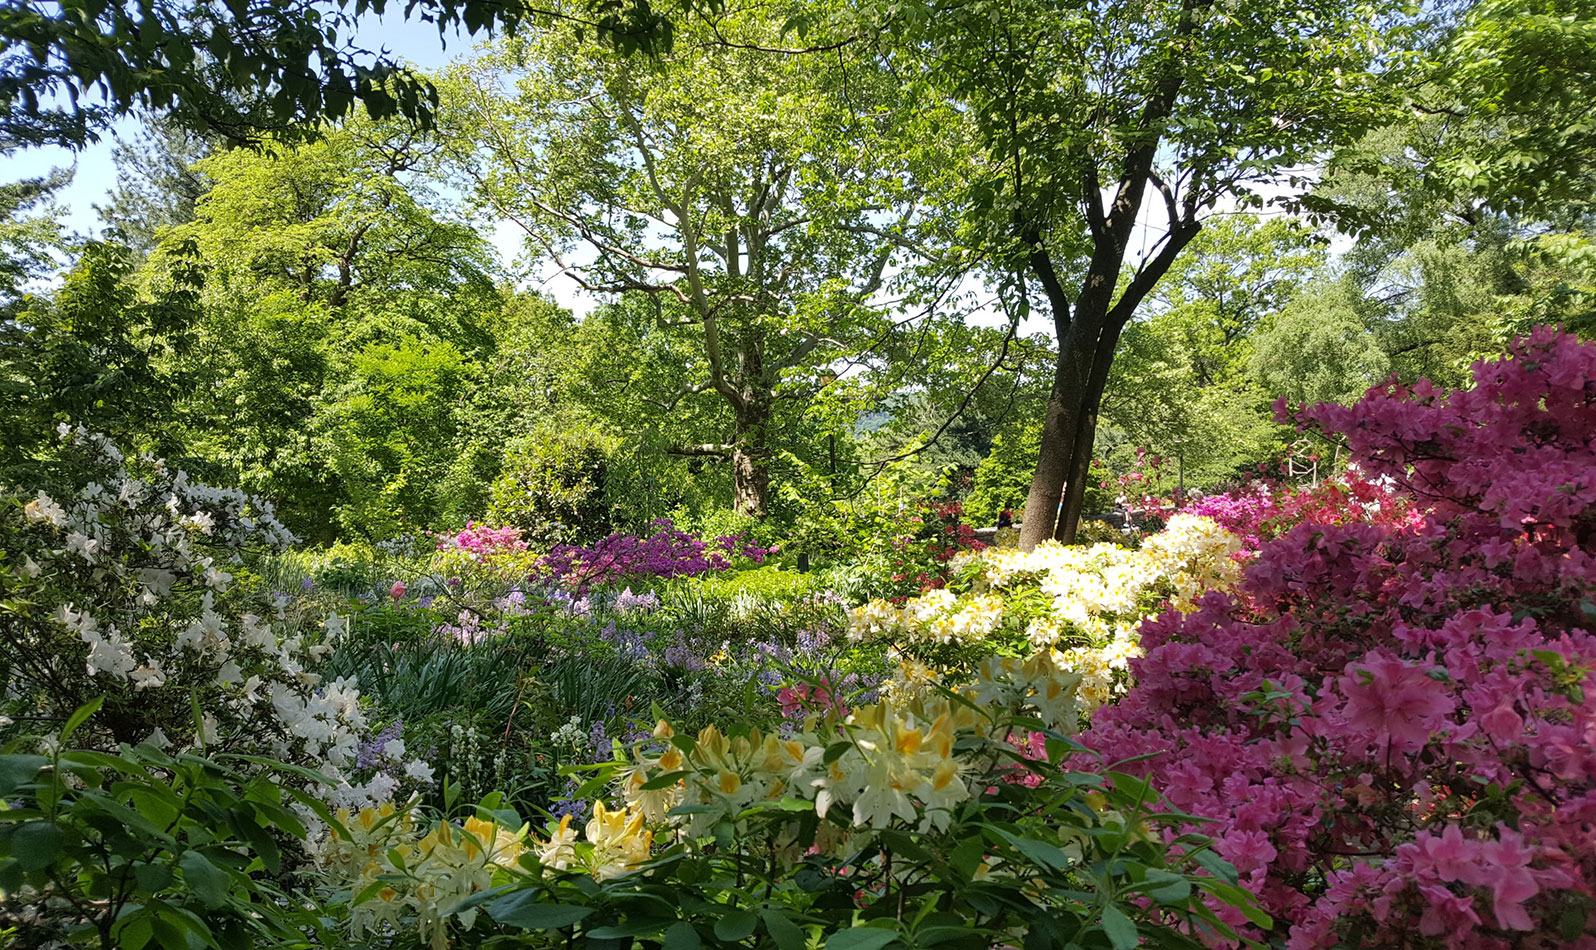 The Heather Garden is New York City's largest garden with unrestricted public access. Visit this breathtaking display of plants and flowers in the summertime.